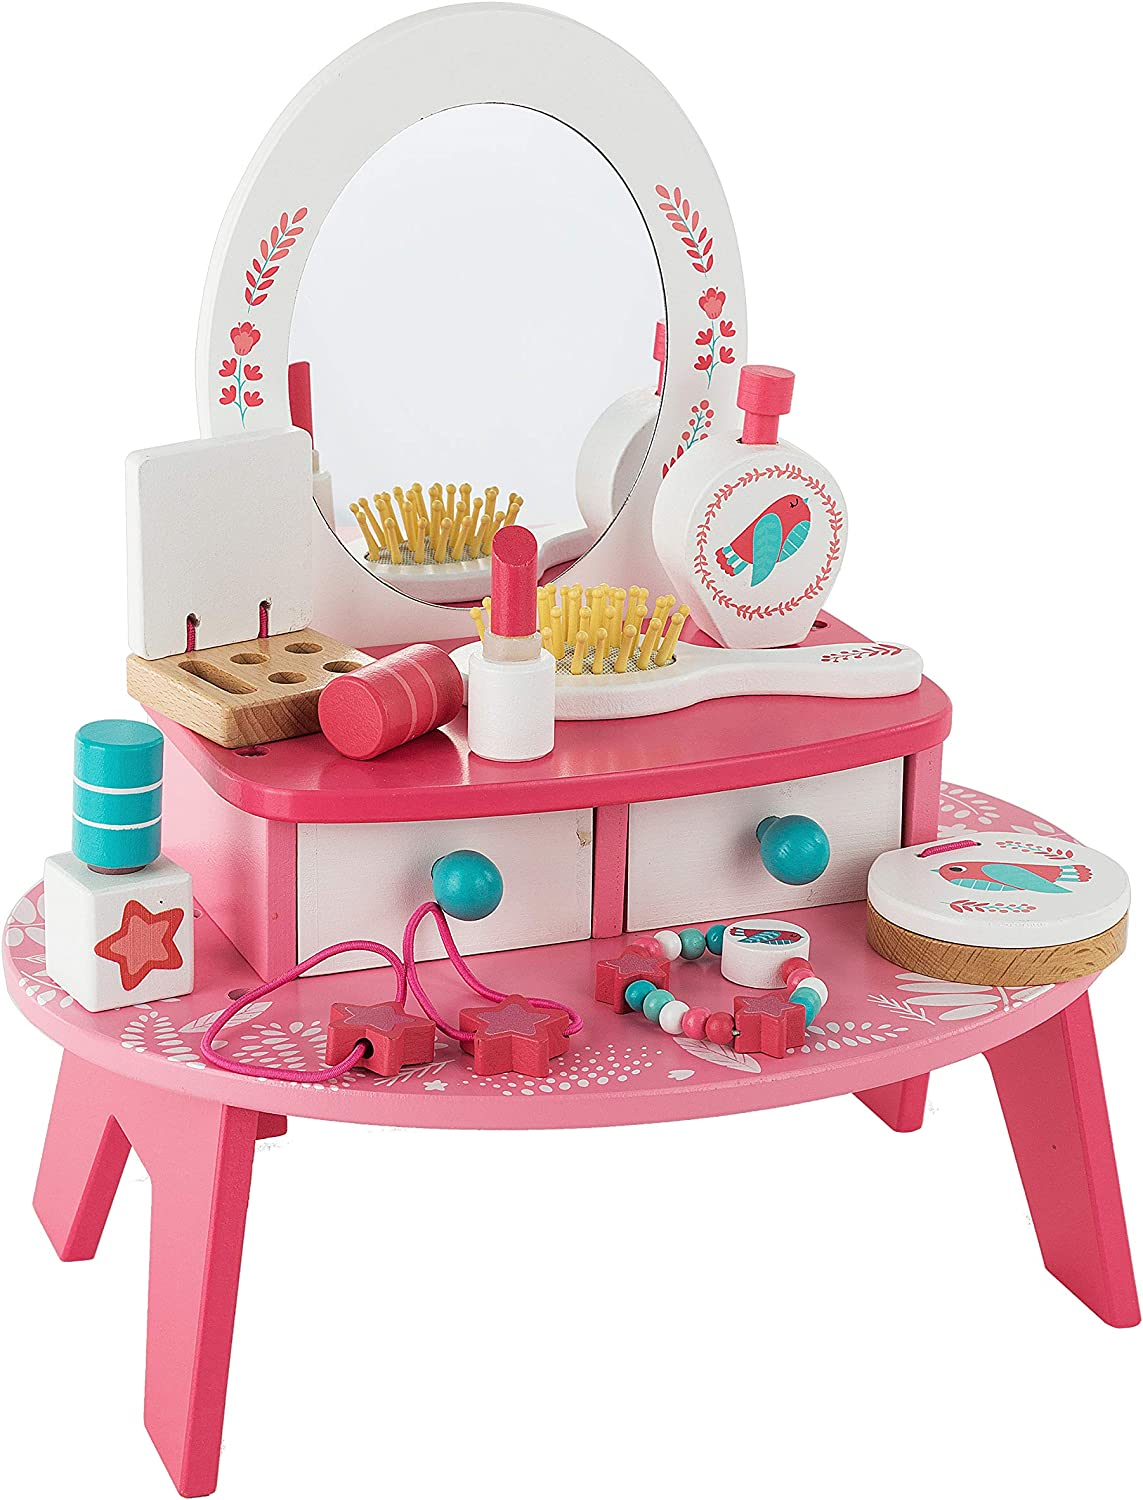 "Toy Chest Nyc Wooden Beauty Salon Play Set, Tabletop Dresser Makeup Station for Kids, Role Playing Vanity Set, 16 Pieces, 11"" x 7.8"" x 13"""